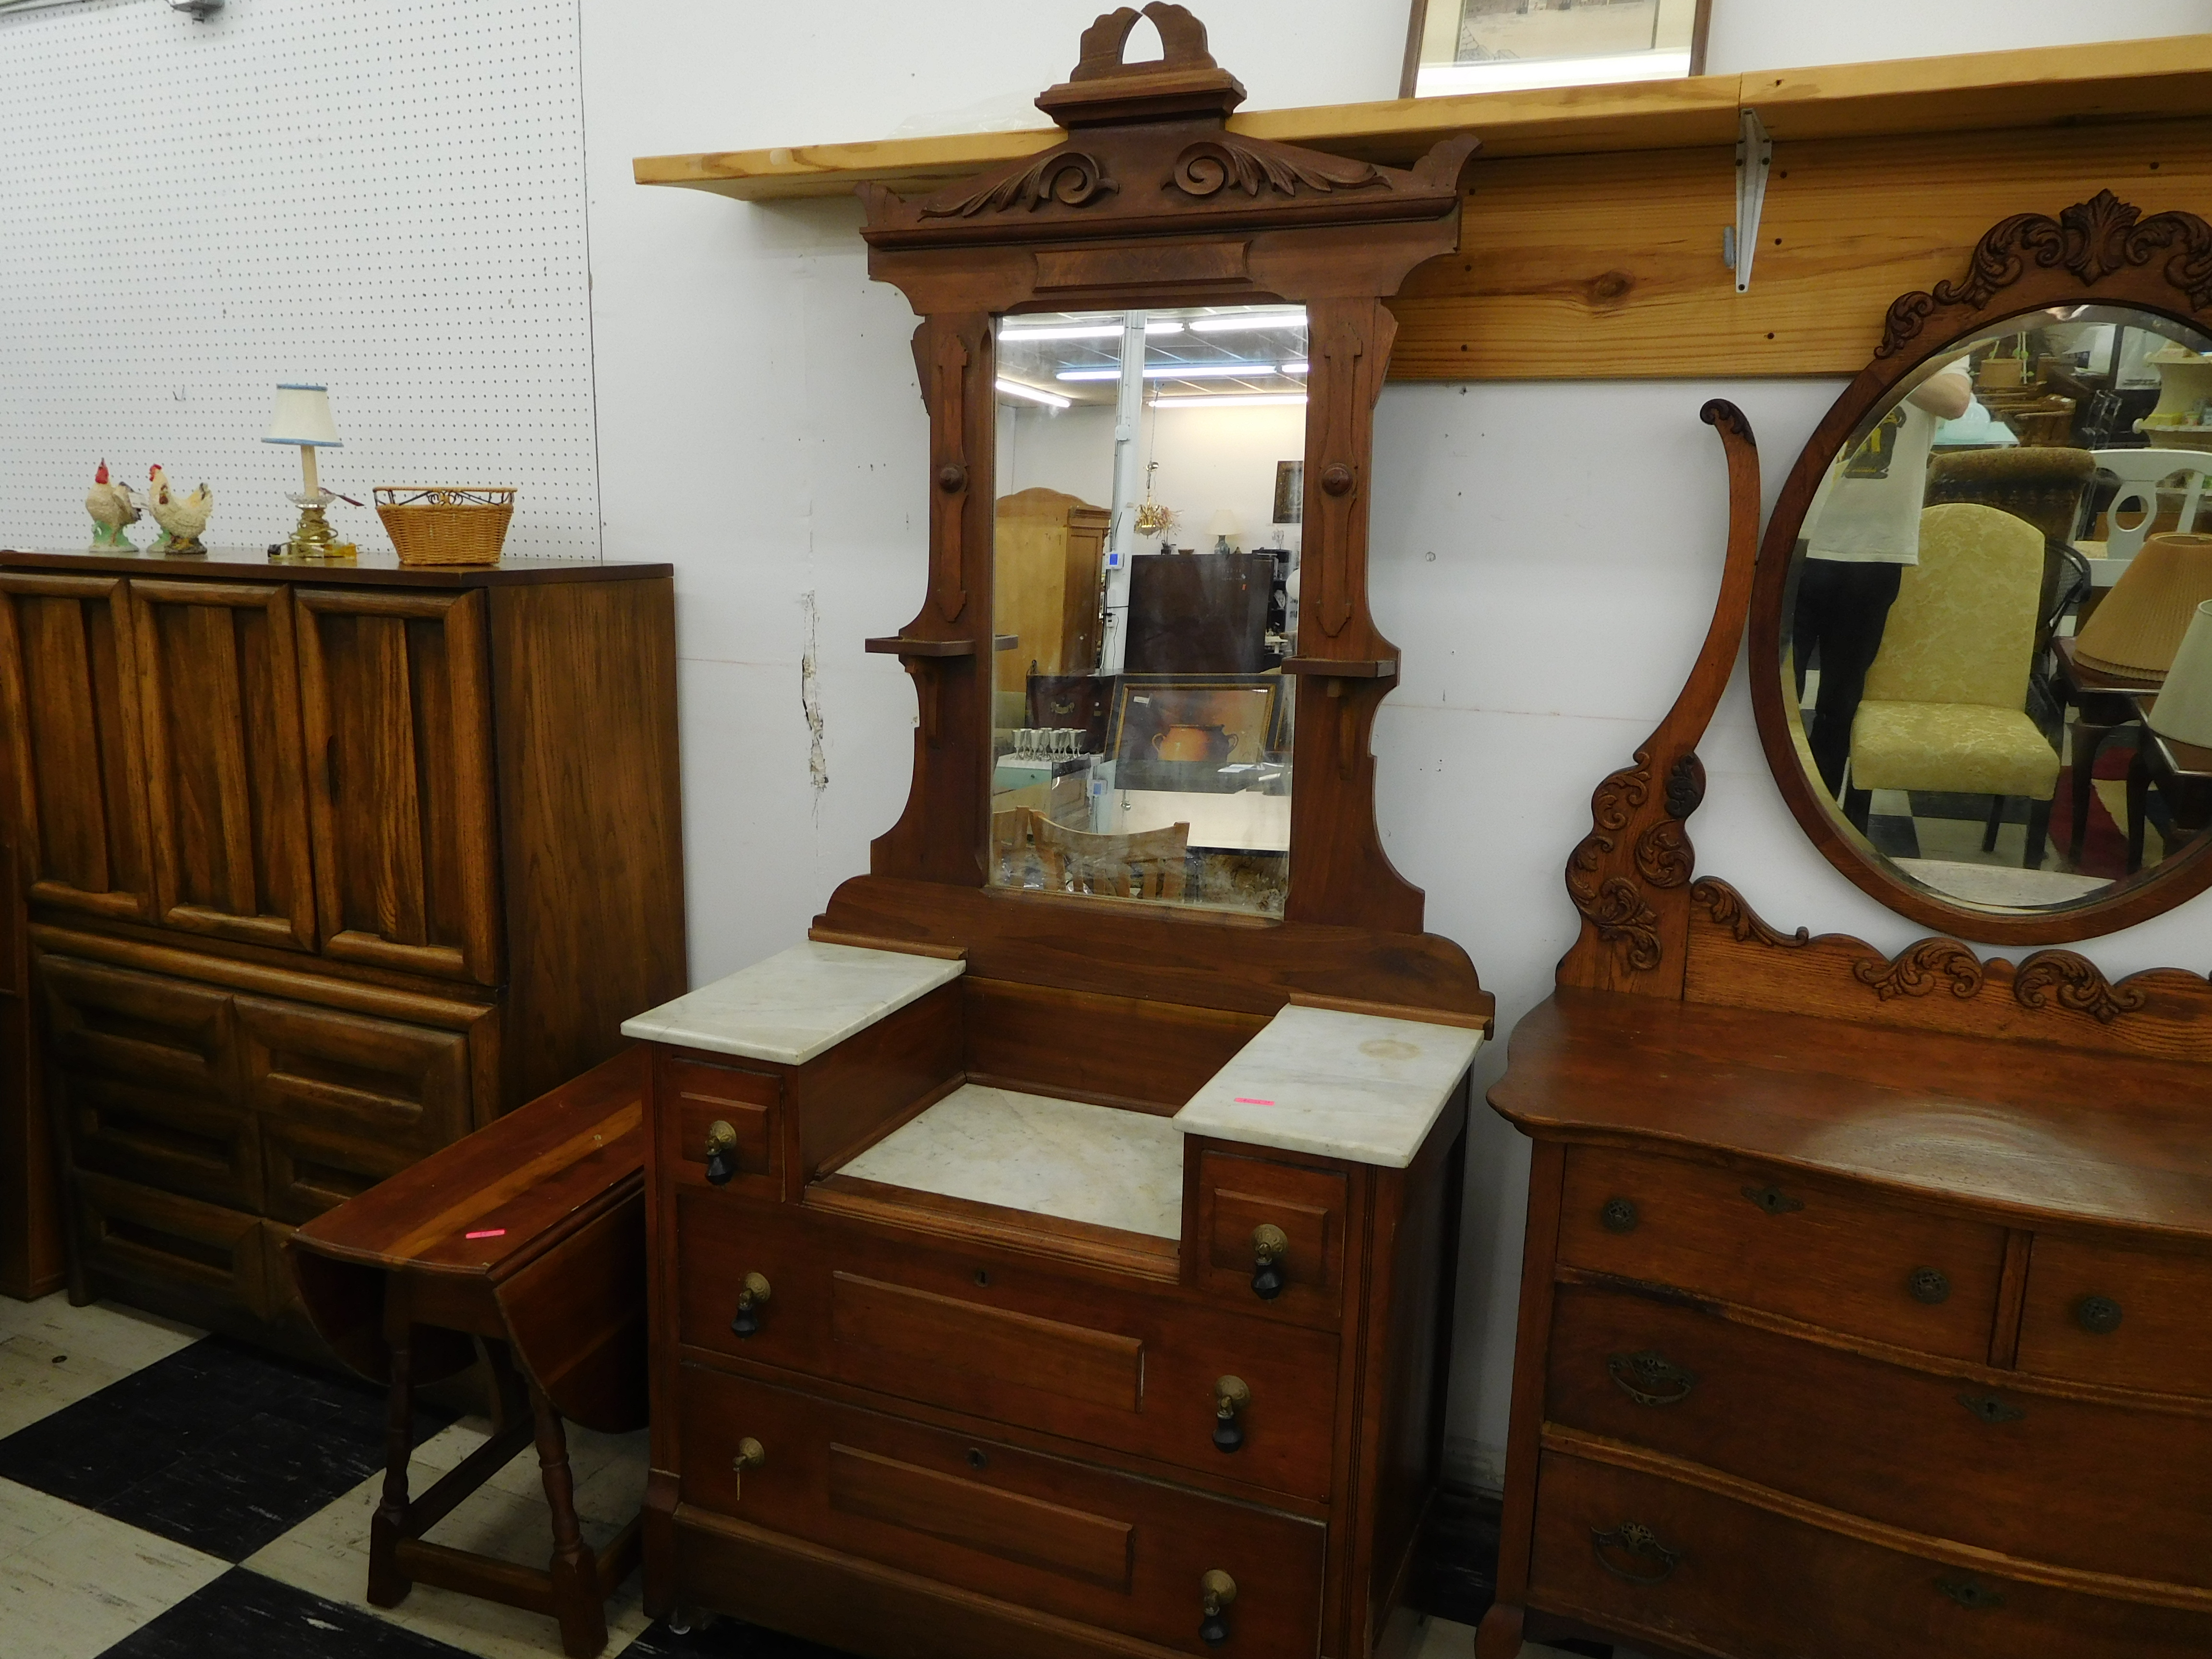 Magnificent Marble Top Vanity with Ornately Carved Mirror Frame